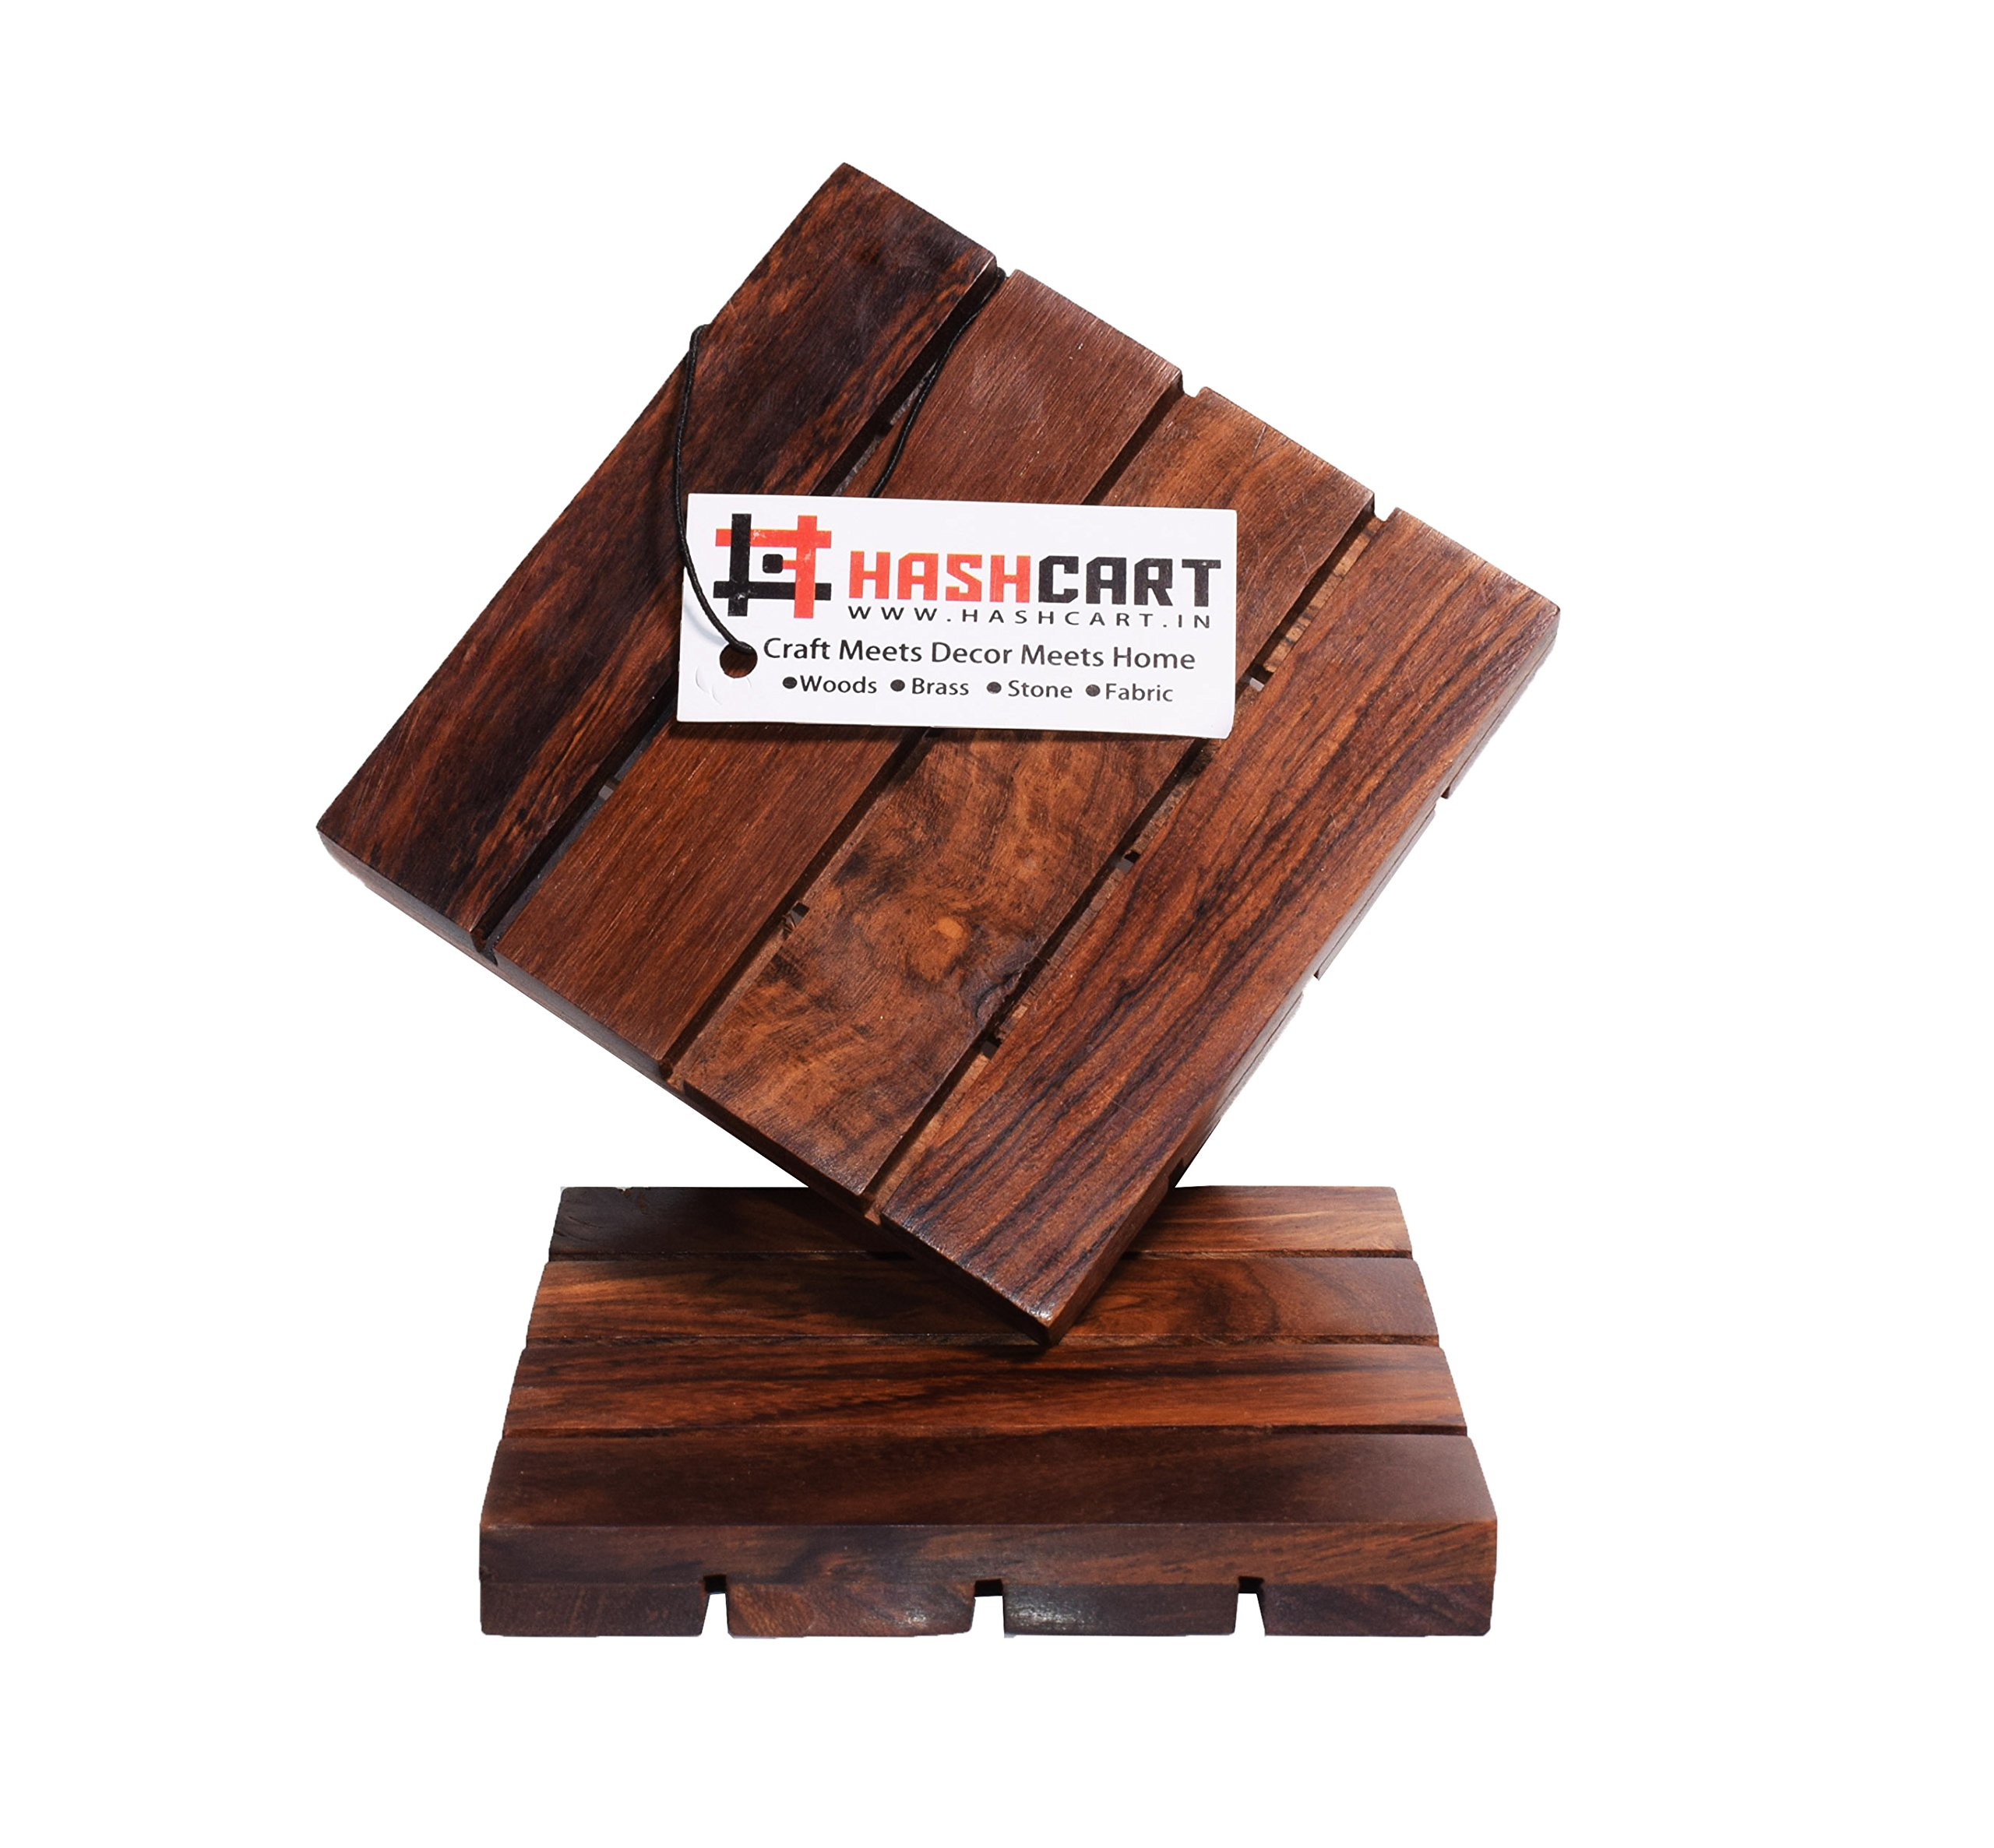 Hashcart Coasters for Drinks-Hot & Cold/Wooden Coaster Sets/Dining, Tea & Coffee Table Decorative Cocktail Coasters in Sheesham Wood | 4x4 inch | Set of 2 by Hashcart (Image #2)